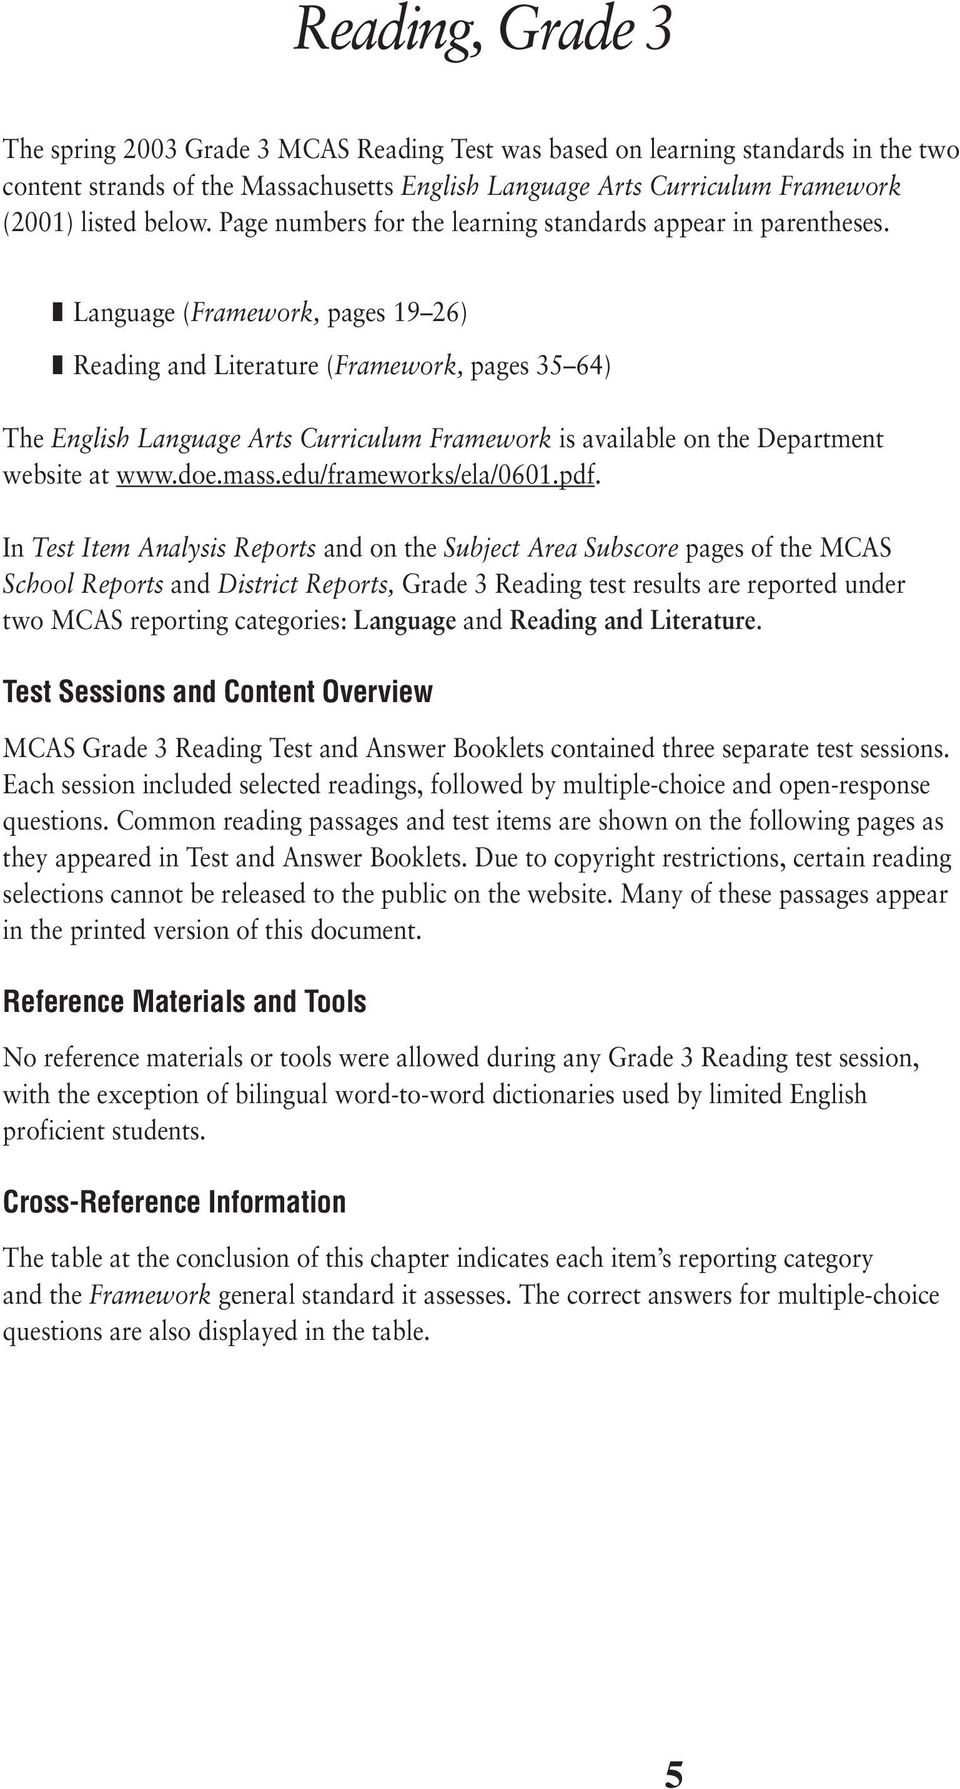 Release of Spring 2003 Test Items - PDF